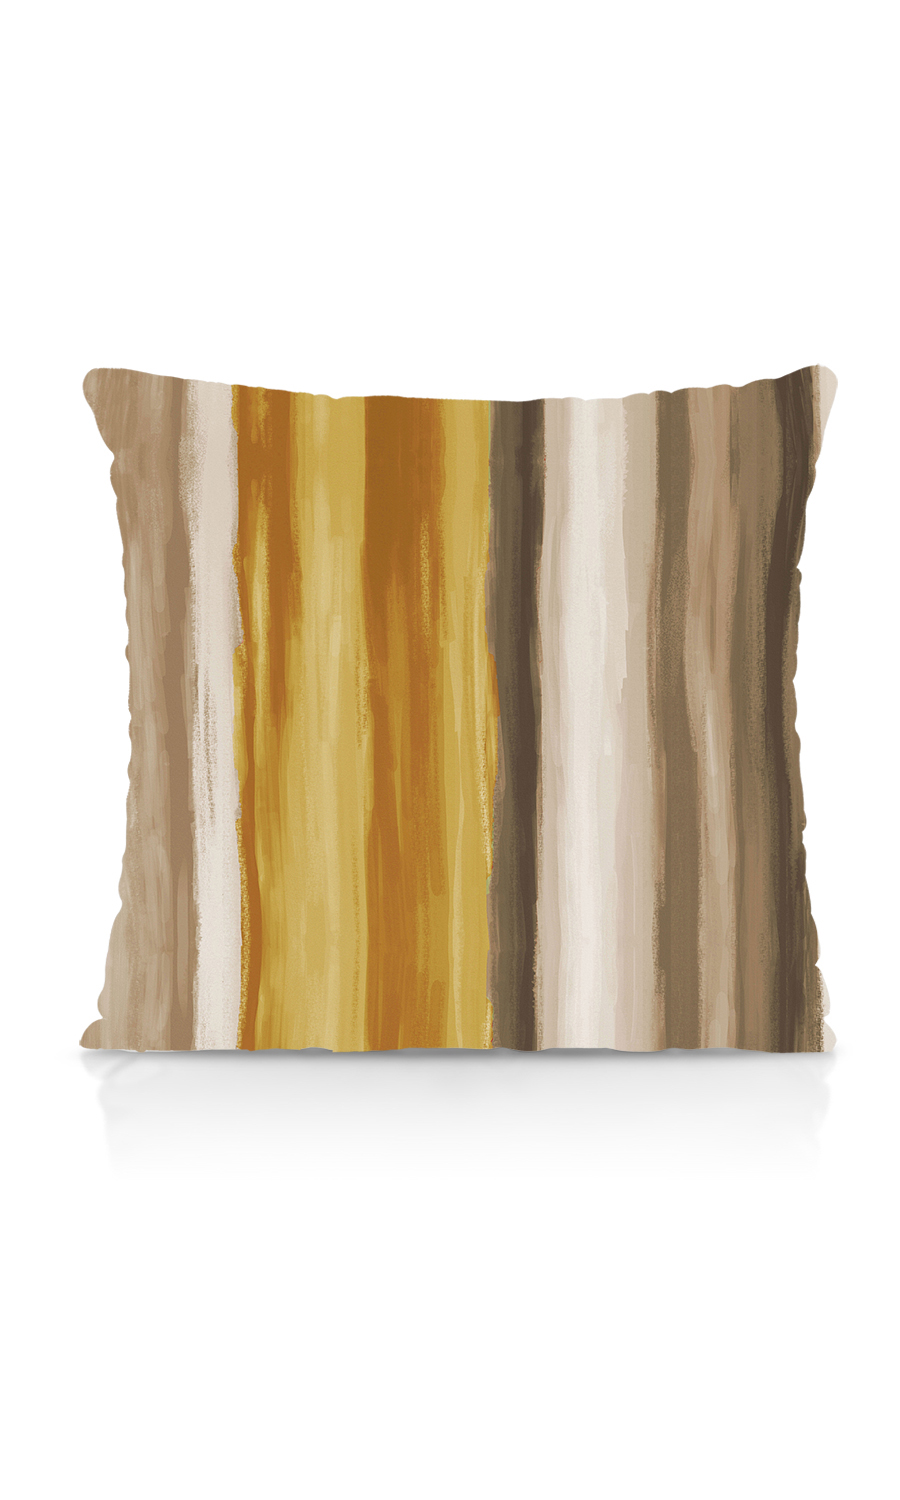 Abstract Printed Custom Cushions For Living Room